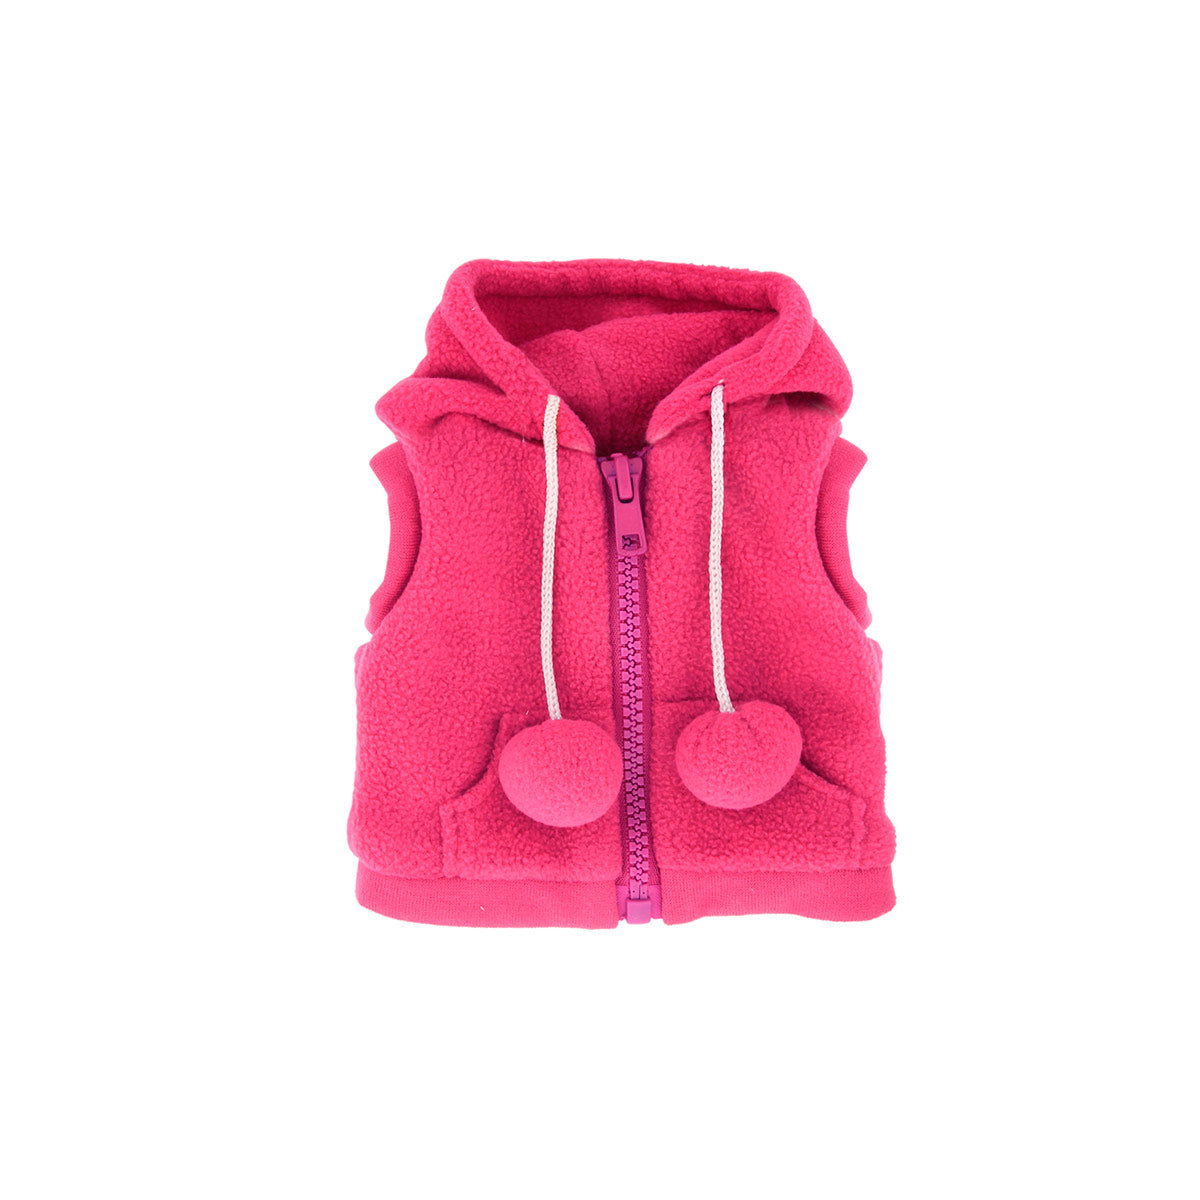 Hot Pink Fleece Vest